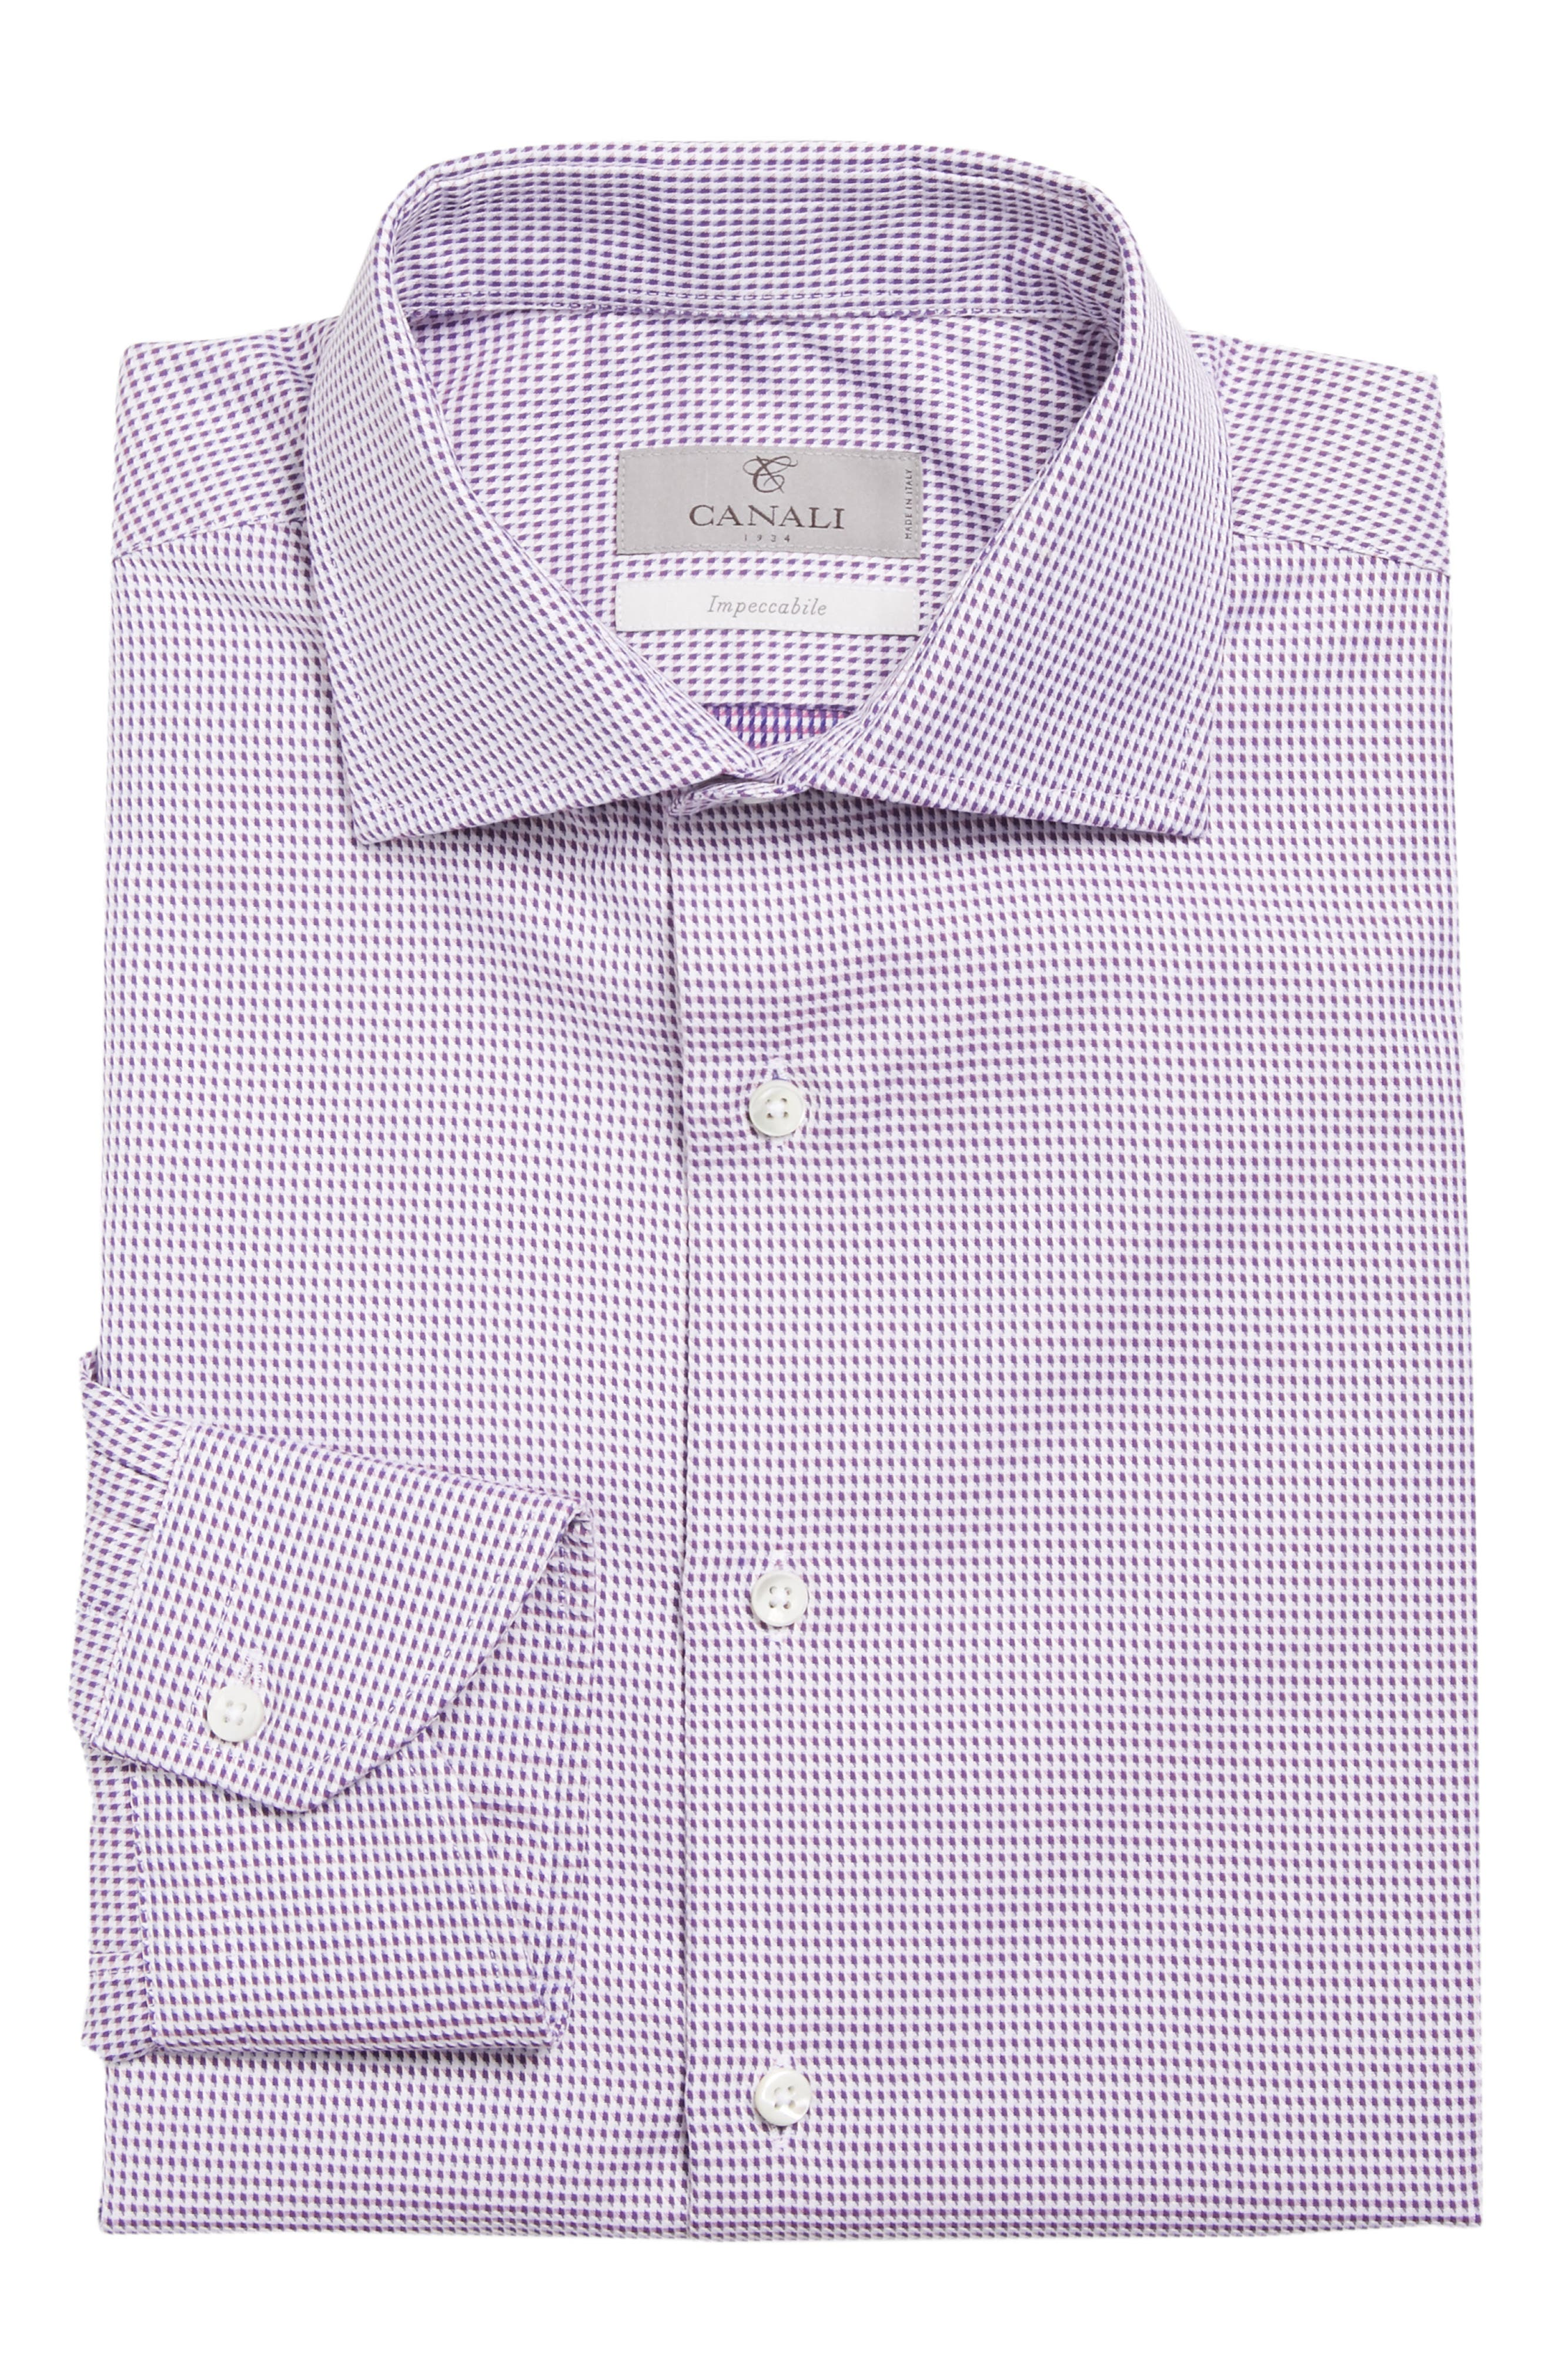 Regular Fit Print Dress Shirt,                             Alternate thumbnail 5, color,                             501